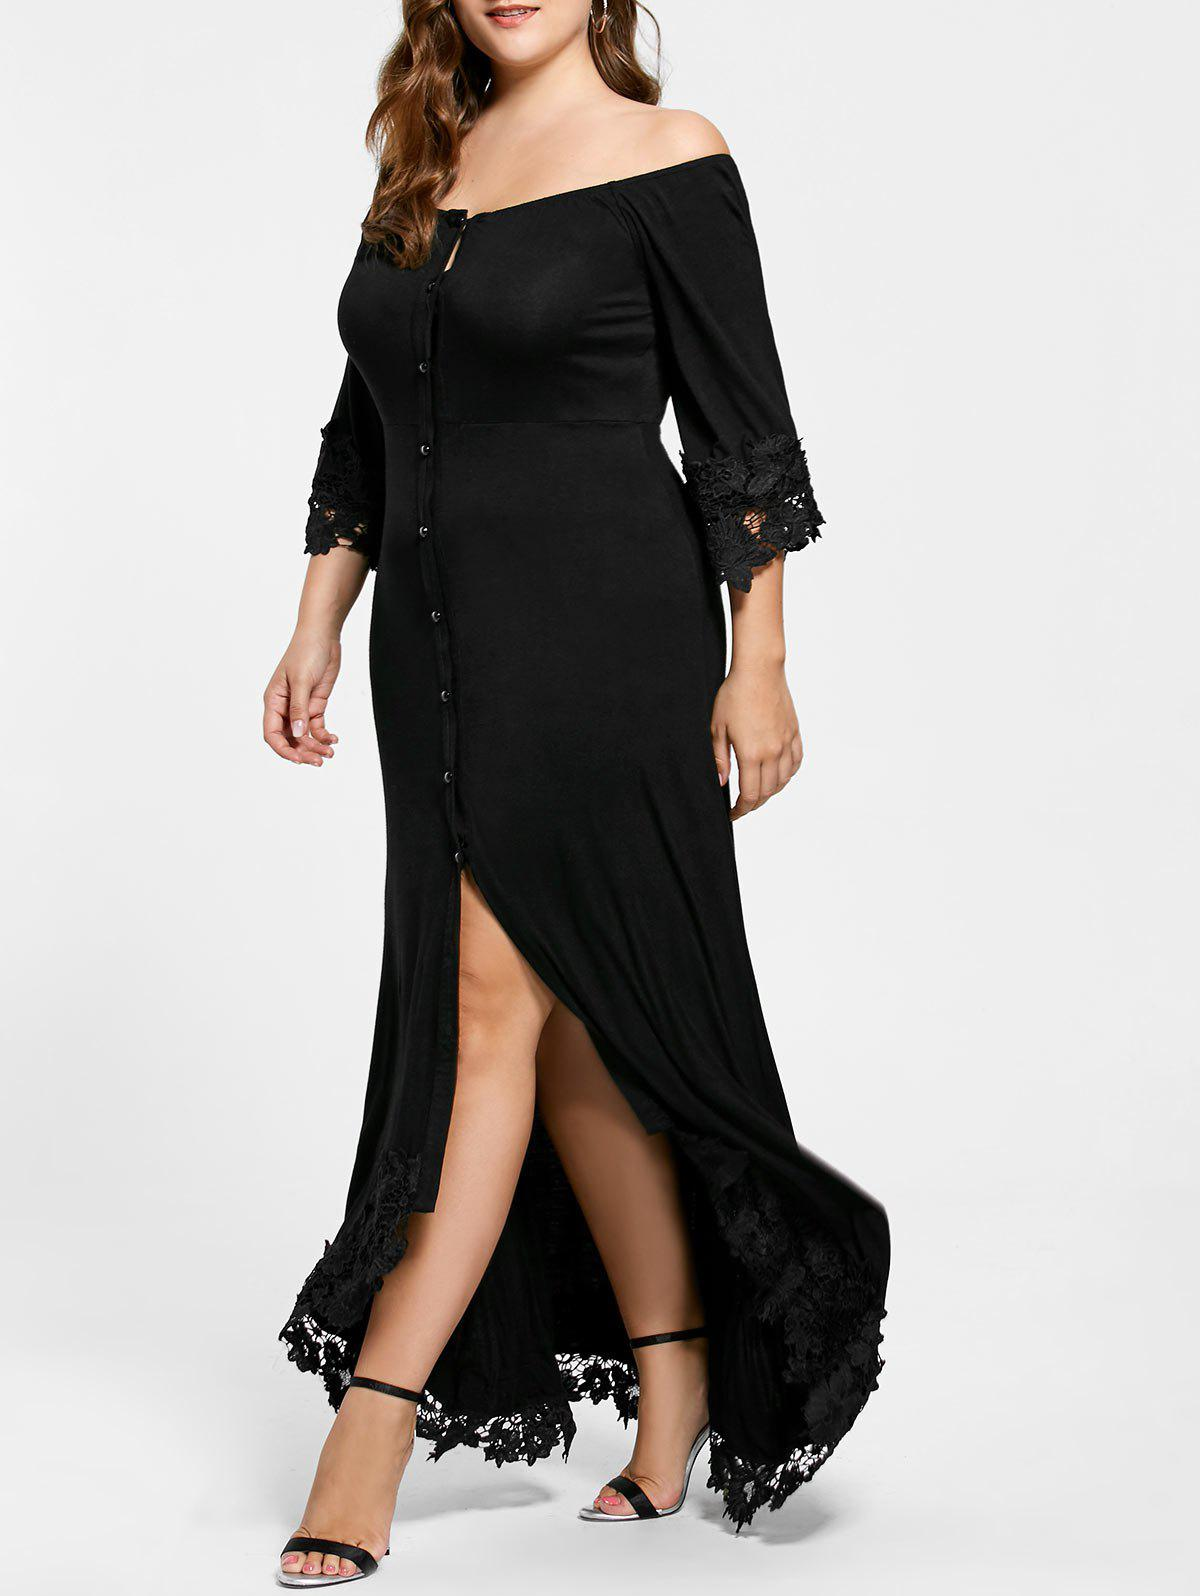 Lace Insert Off The Shoulder Plus Size Holiday DressWOMEN<br><br>Size: 5XL; Color: BLACK; Style: Brief; Material: Cotton,Spandex; Silhouette: A-Line; Dresses Length: Floor-Length; Neckline: Off The Shoulder; Sleeve Length: 3/4 Length Sleeves; Pattern Type: Patchwork,Solid Color; With Belt: No; Season: Fall,Spring; Weight: 0.5800kg; Package Contents: 1 x Dress;